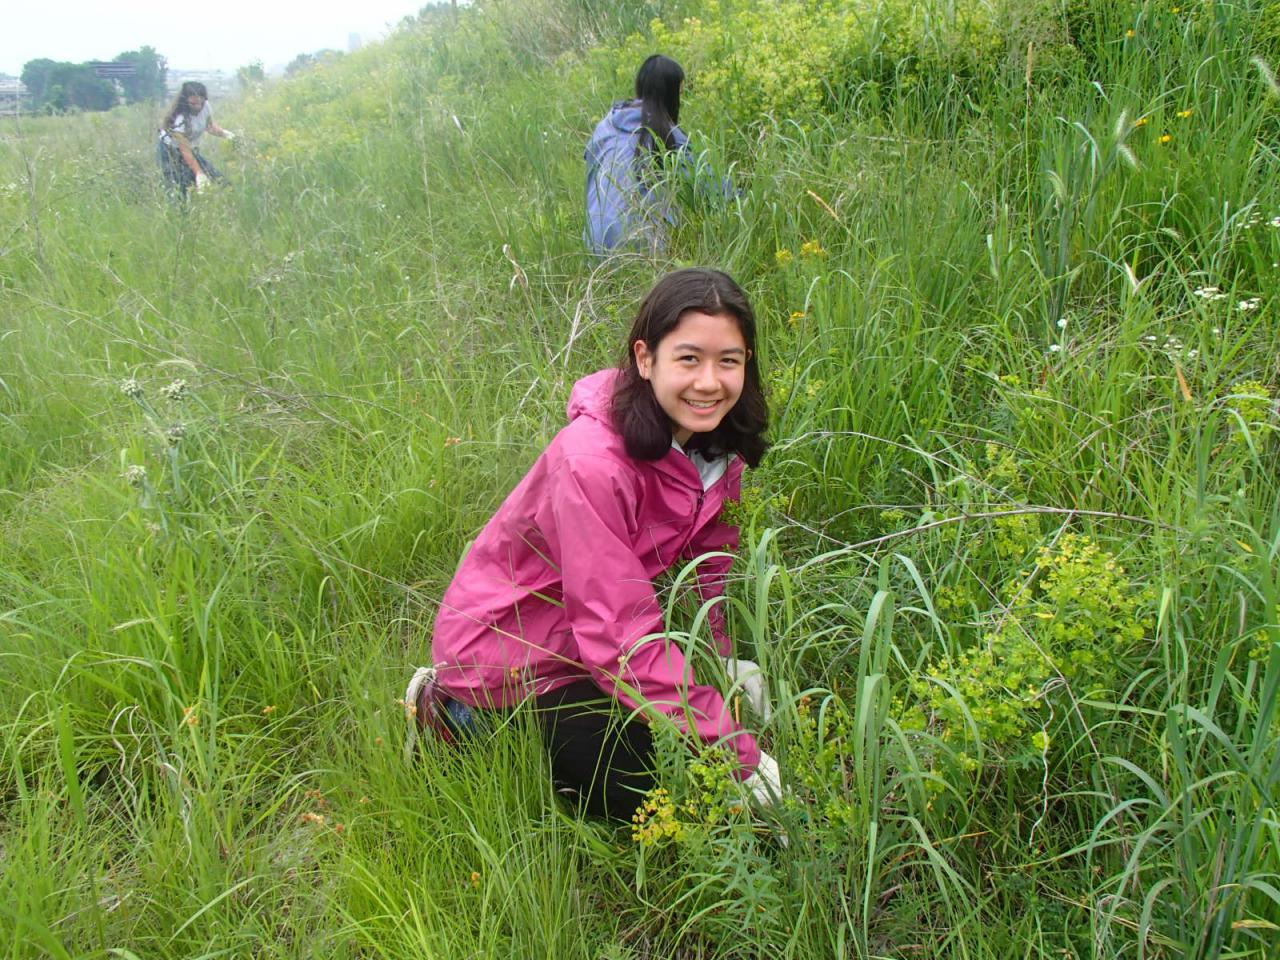 One of the program participants removes invasive species on a rainy day at Trout Brook Nature Sanctuary